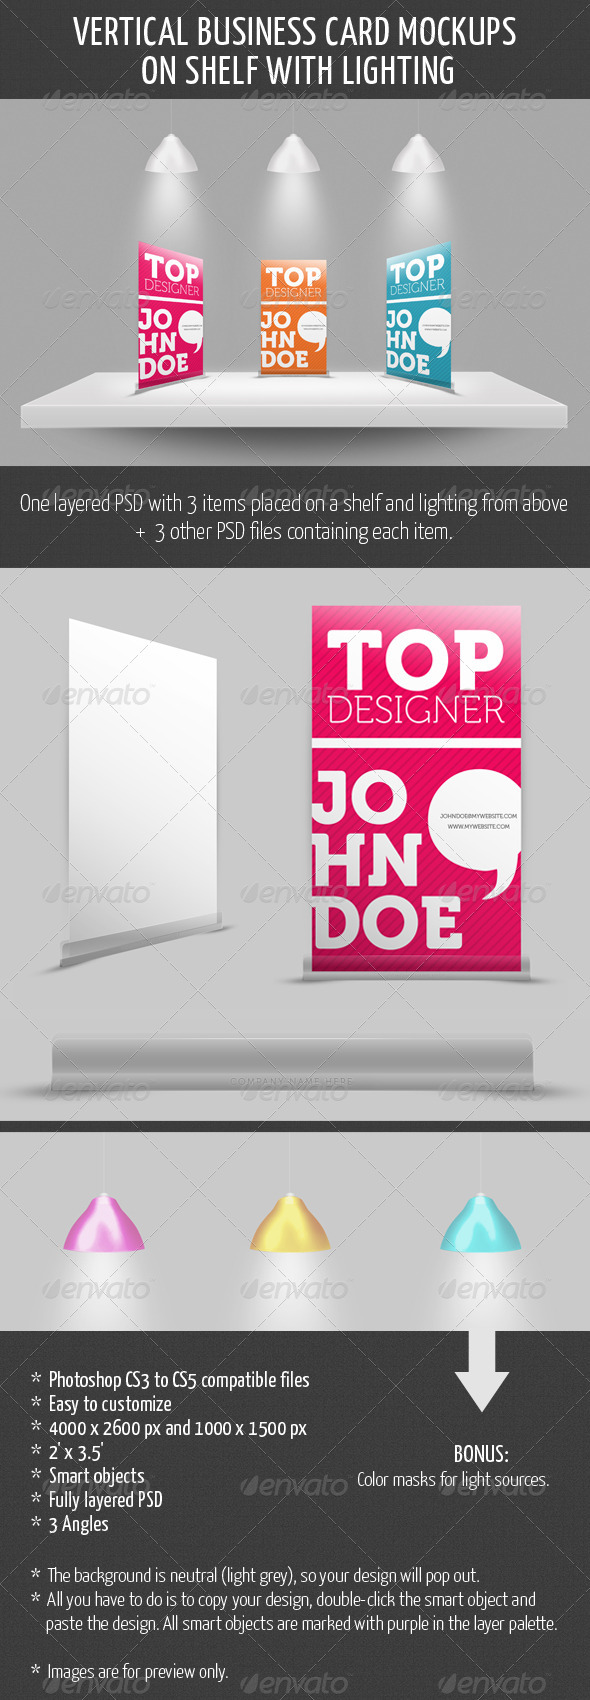 GraphicRiver Vertical Business Card Mockup on Shelf 1364031